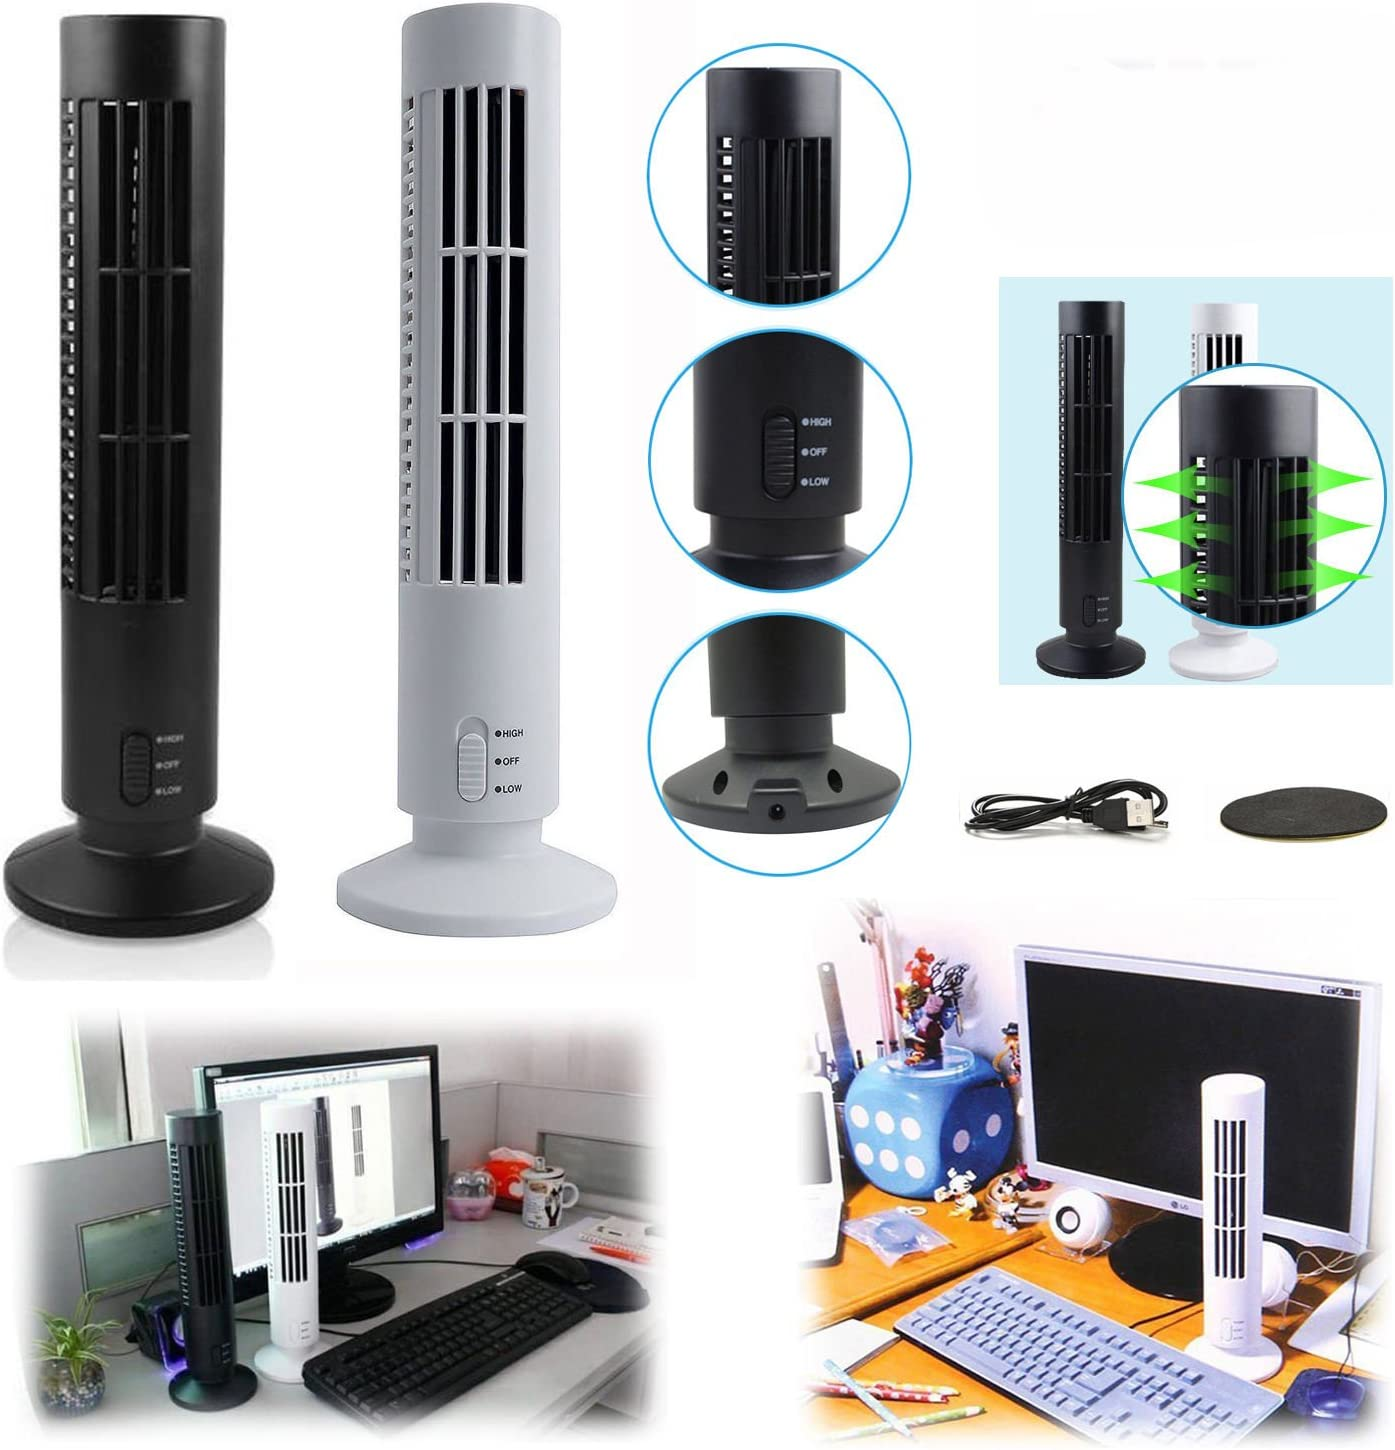 DishyKooker Portable USB Vertical Bladeless Fan Mini Air Condition Fan Desk Cooling Tower Fan for Home//Office White Practical Electronic Product